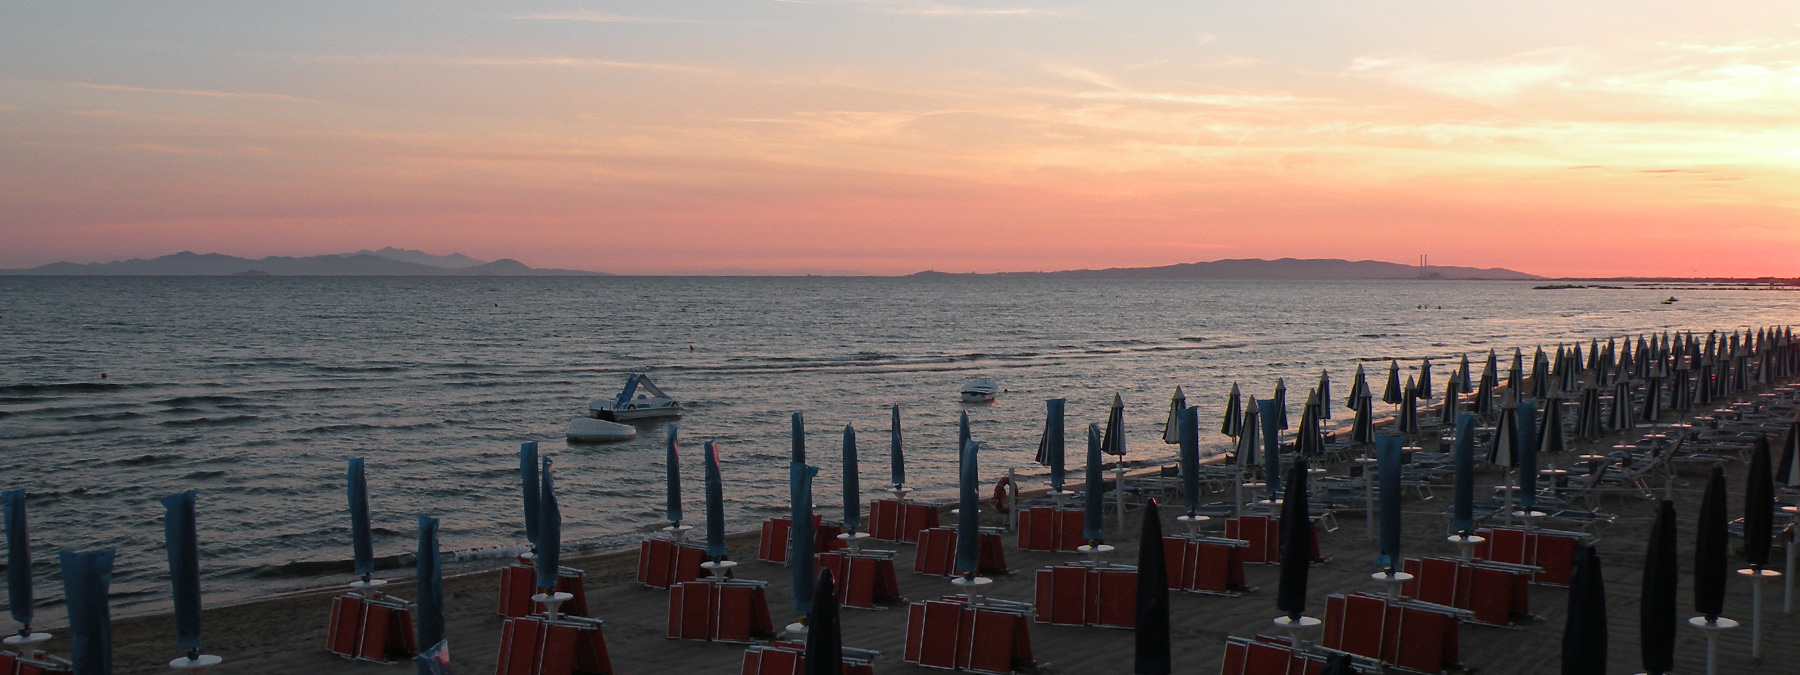 Family holidays in a hotel with restaurant and beach in Tuscany